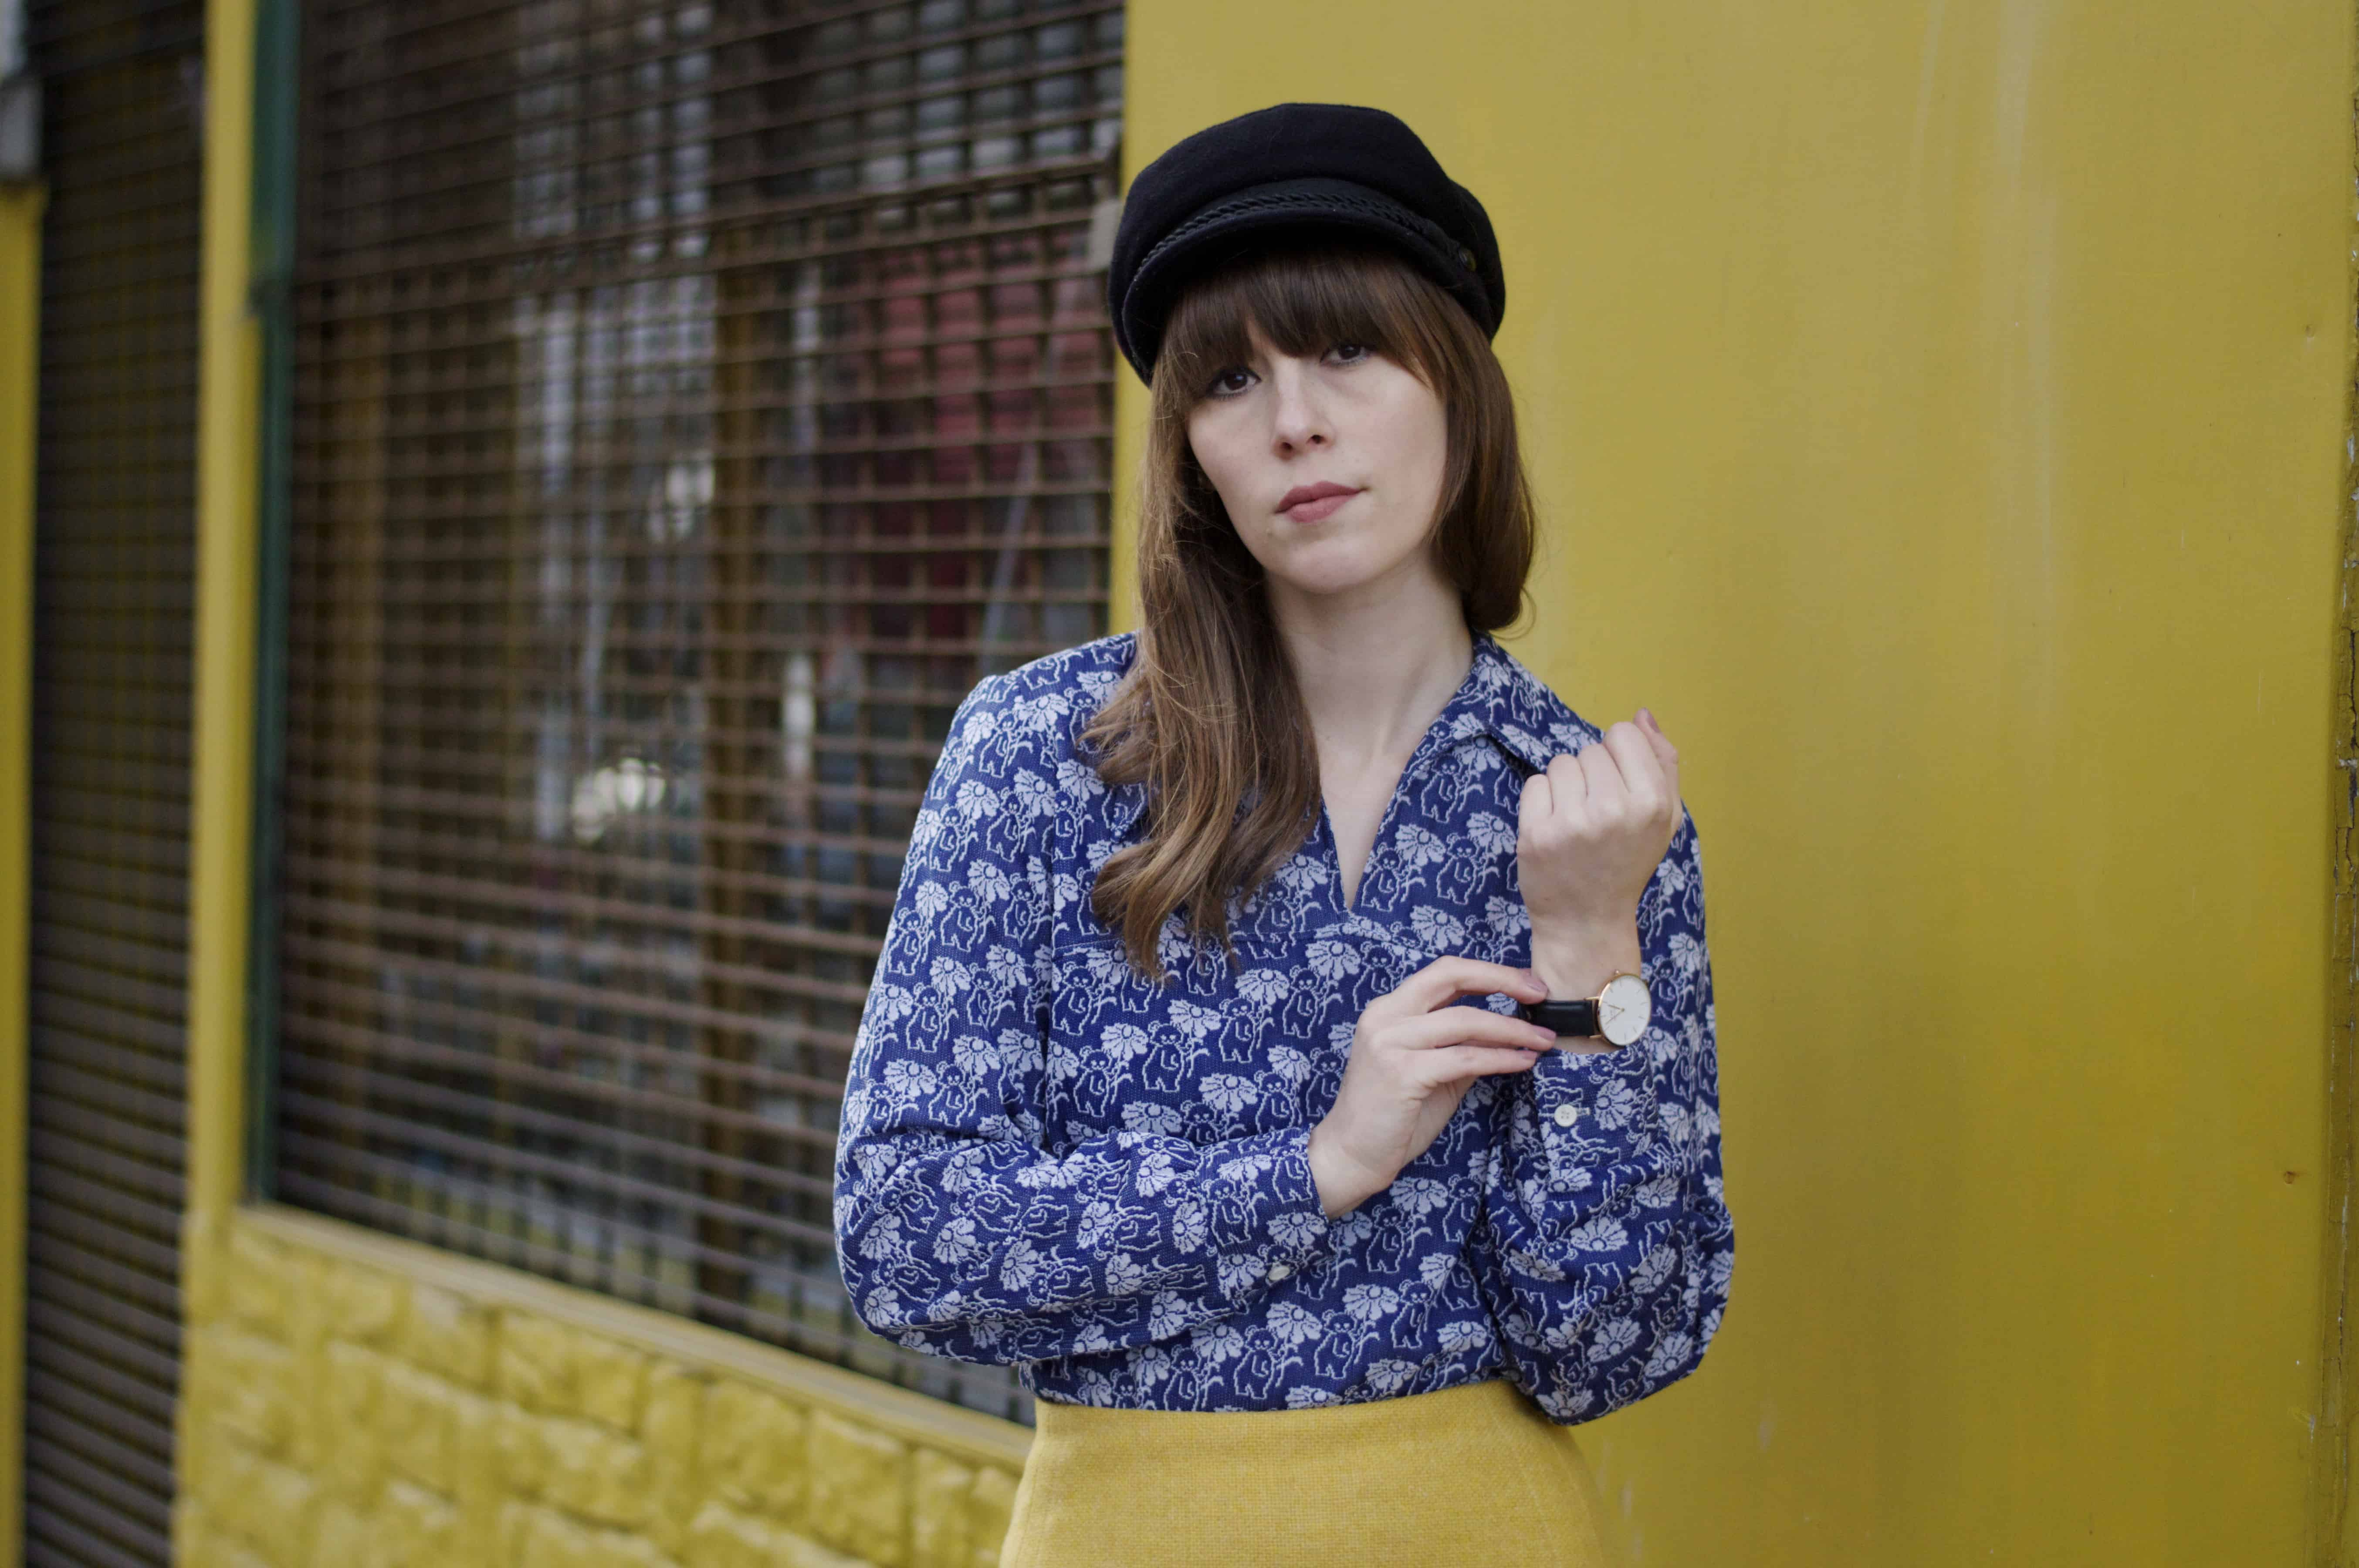 Wearing a blue printed seventies shirt against a yellow wall